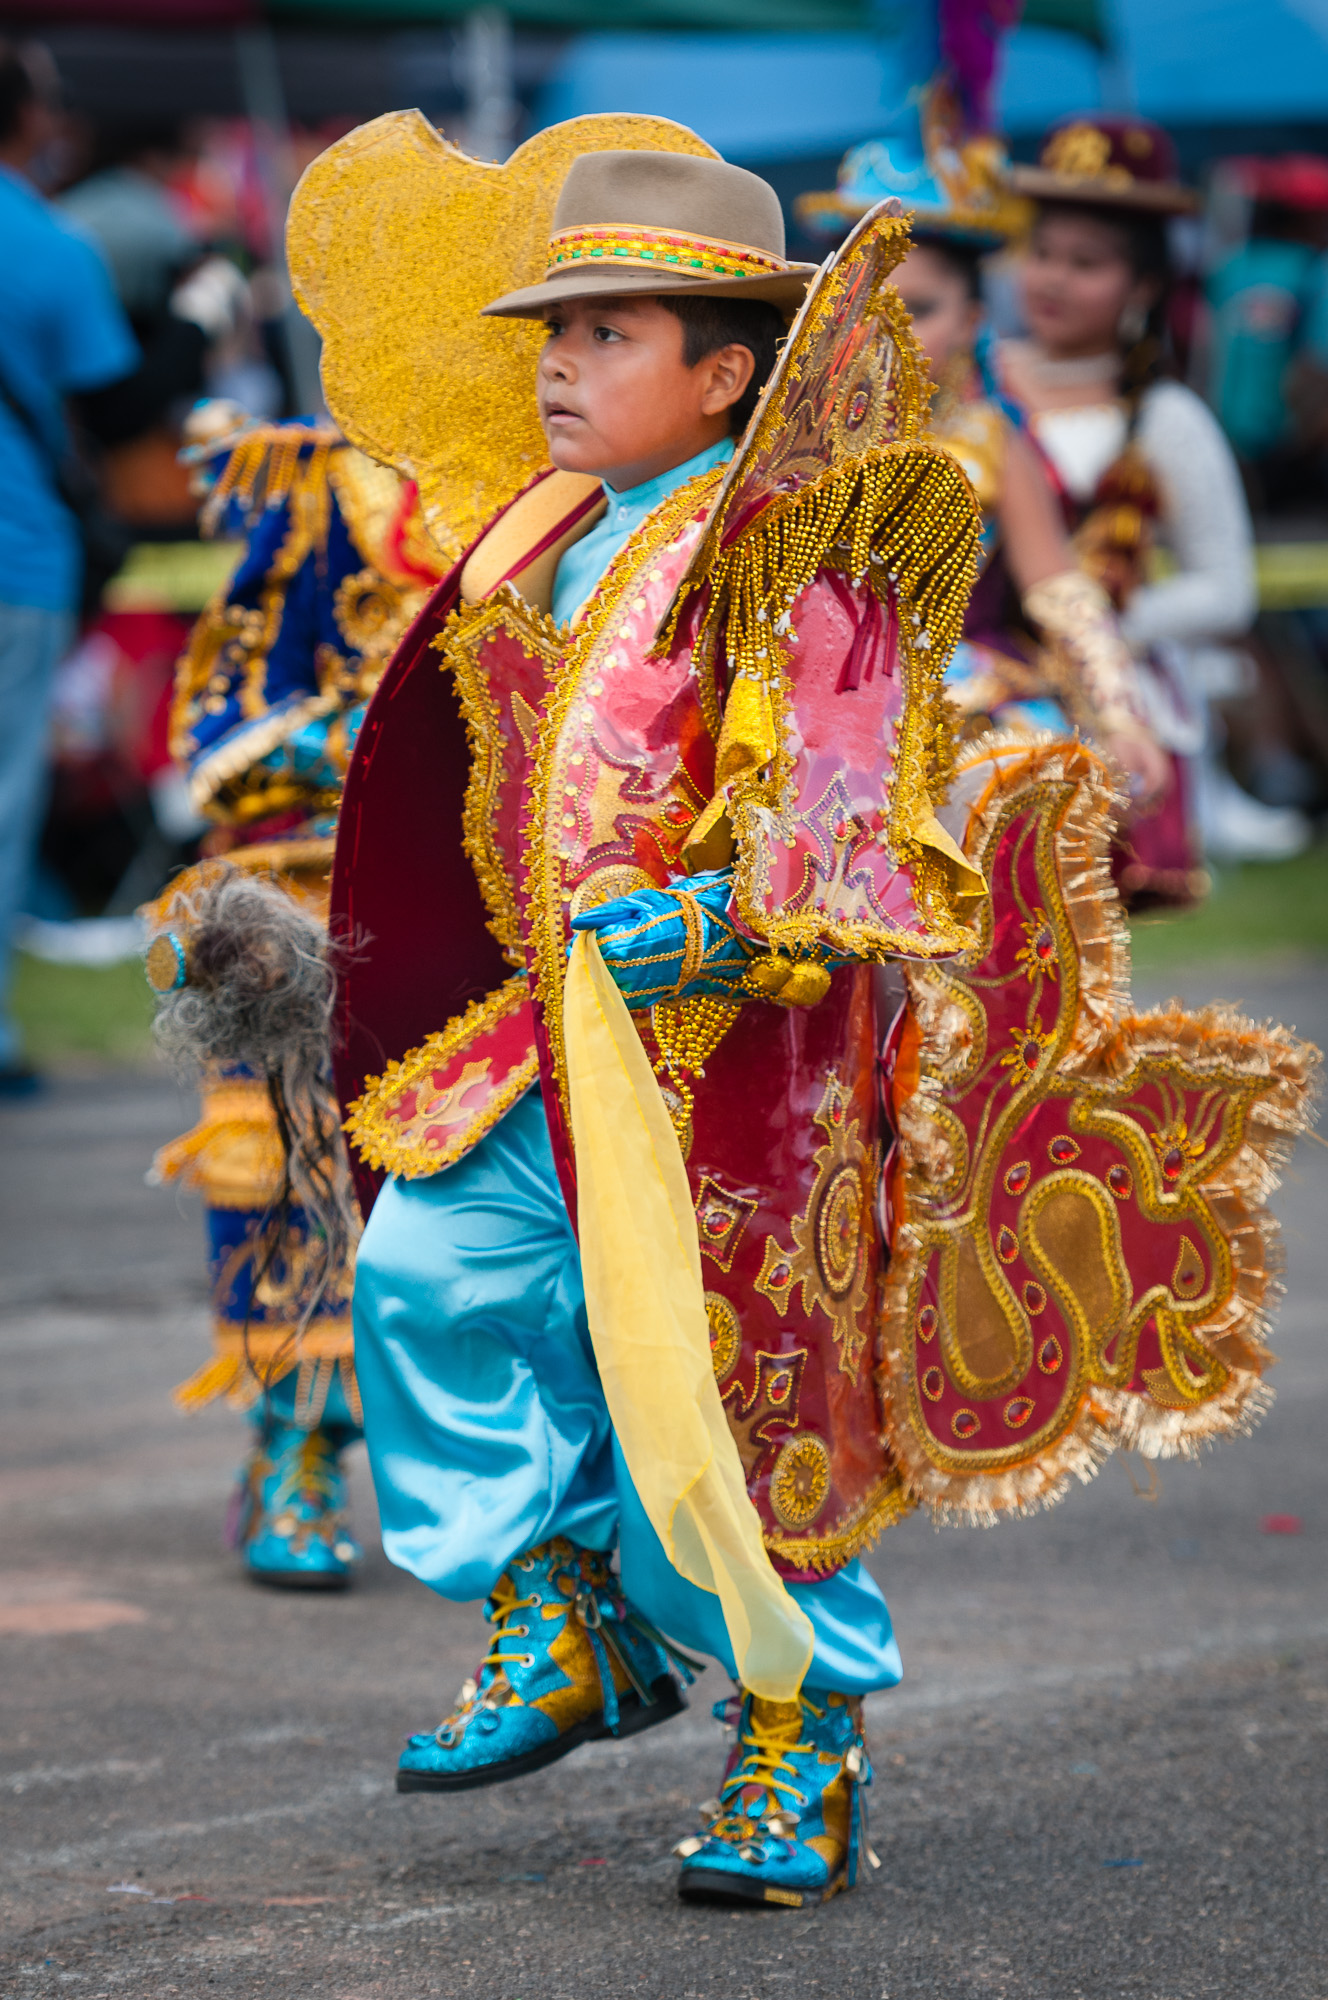 Another young performer from Morenada Central VA USA performing a Morenada dance.